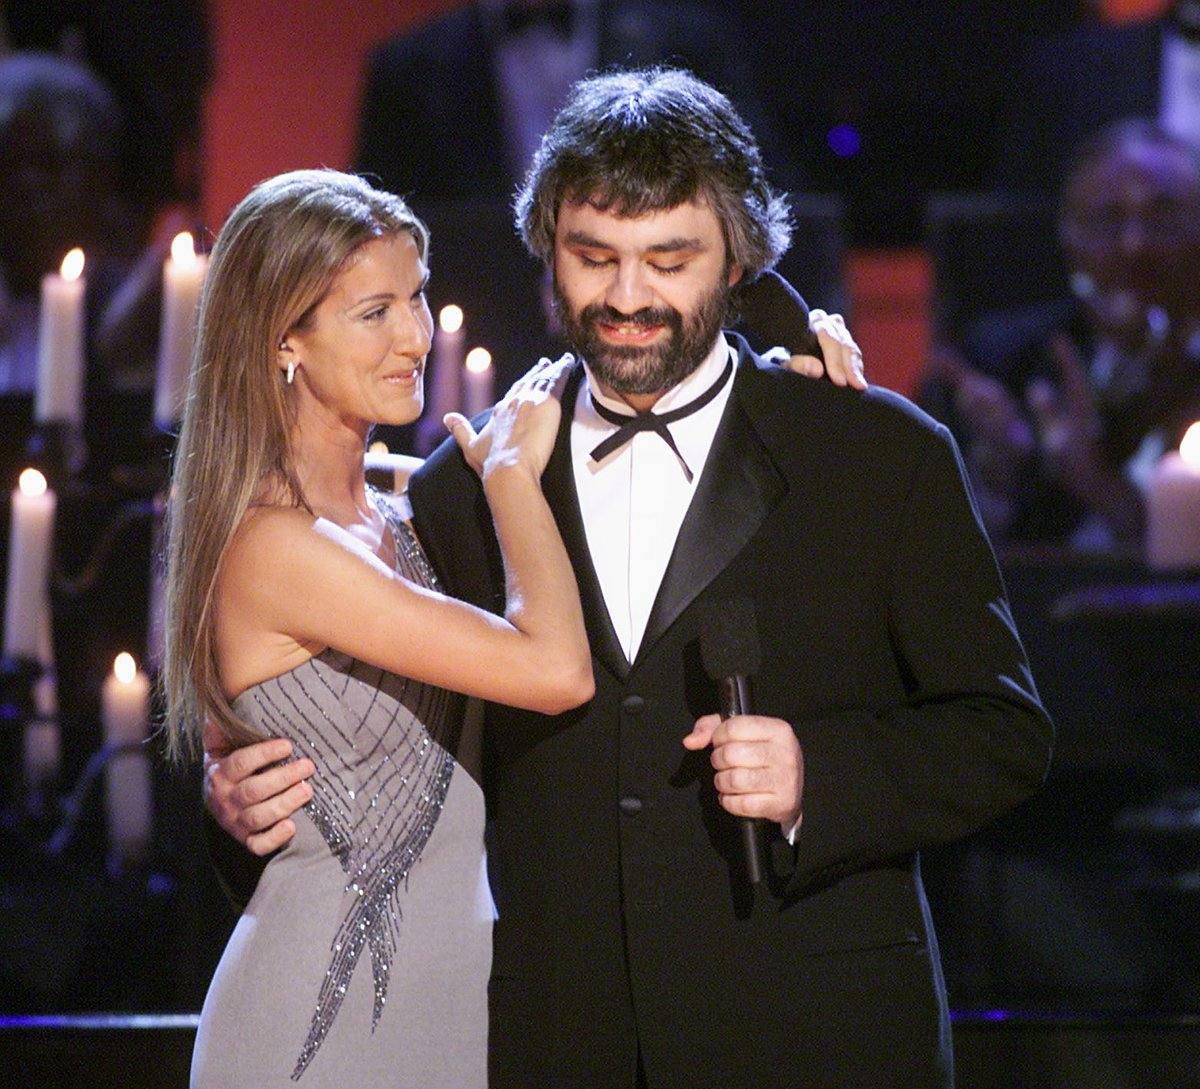 GRAMMY winners @celinedion and @AndreaBocelli at the 41st #GRAMMYs held in #LosAngeles on February 24, 1999. 🎵✨ #GRAMMYVault